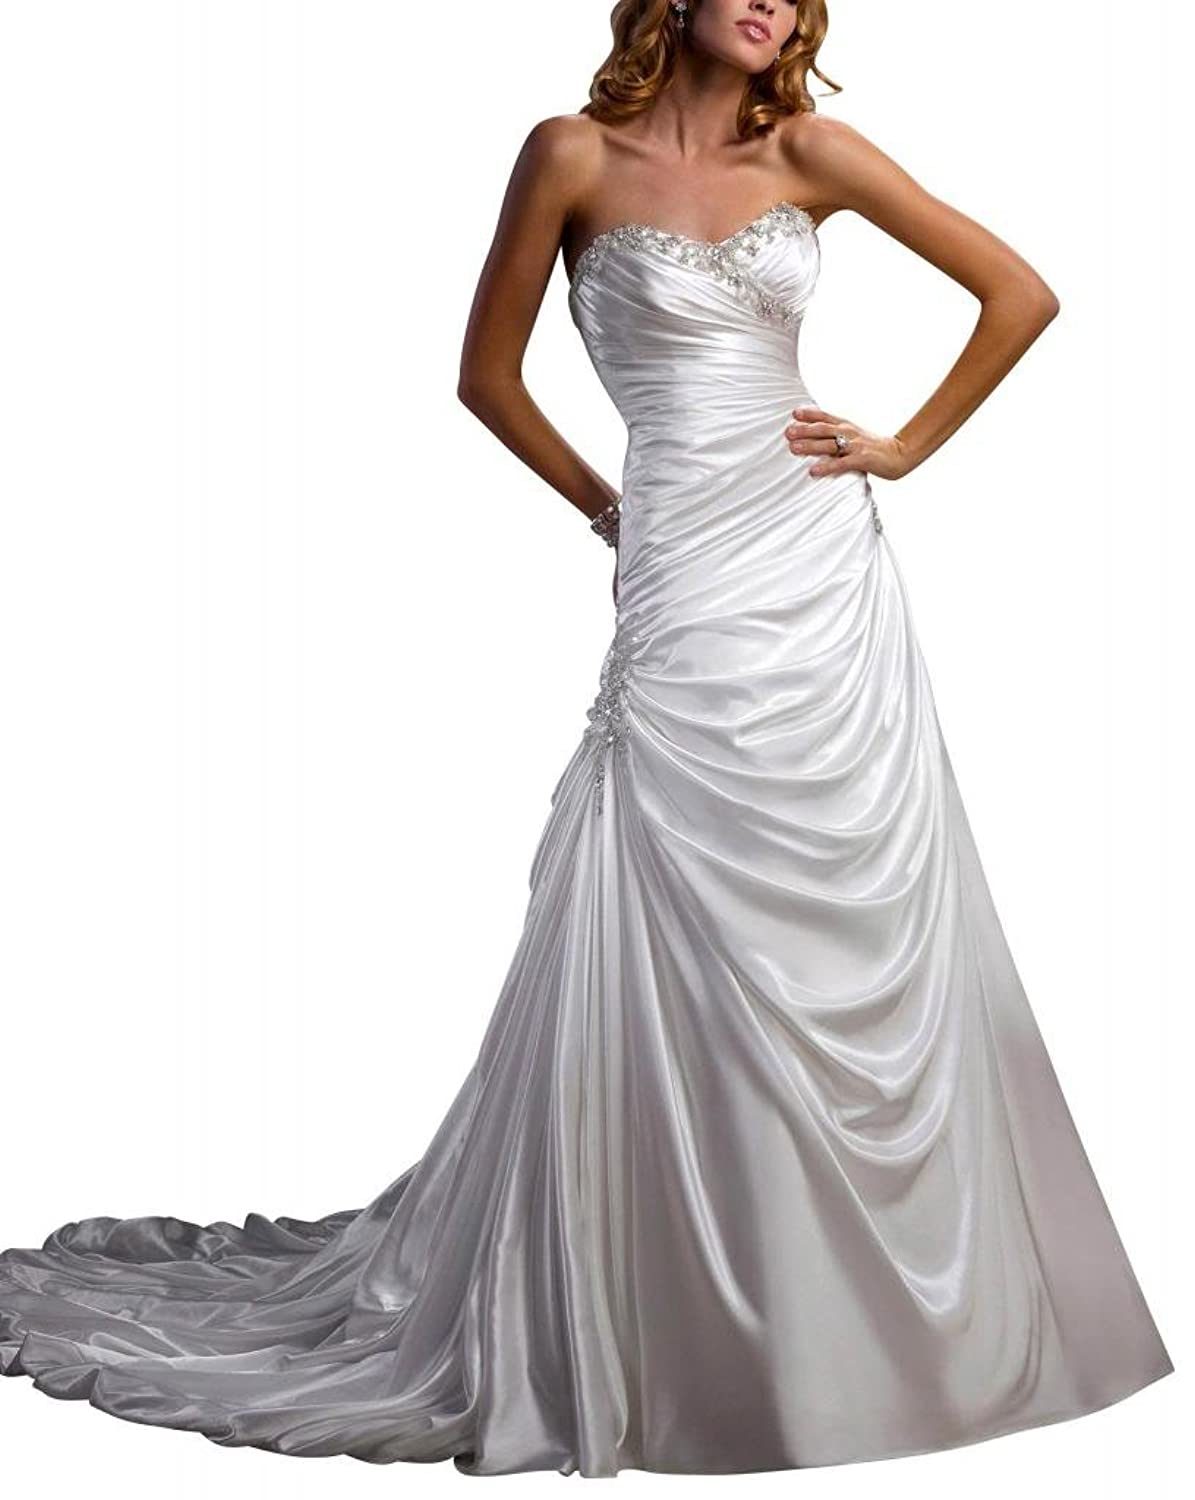 GEORGE BRIDE Charming Sweetheart Chapel Train Satin Wedding Dress